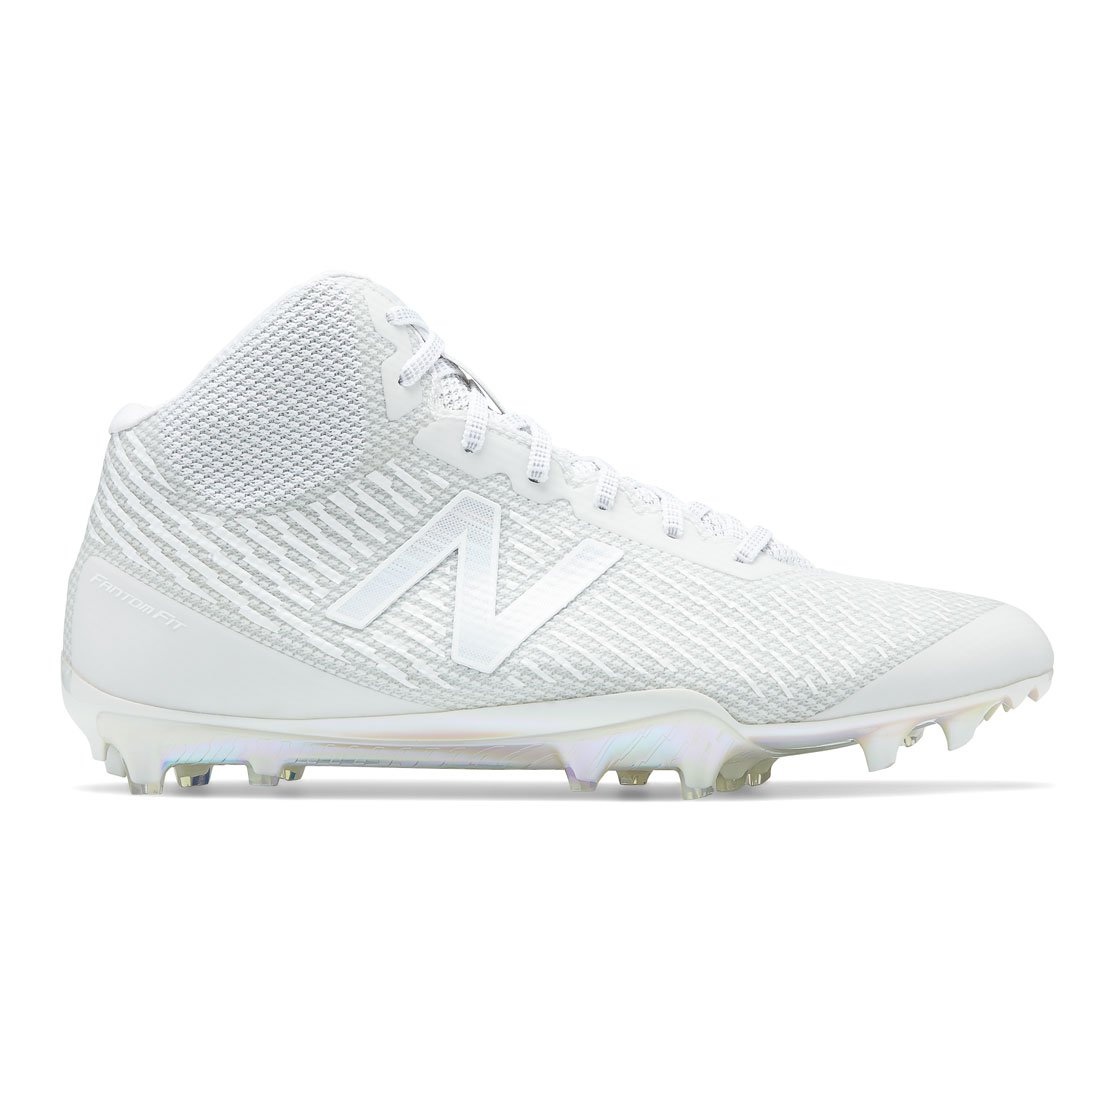 New Balance Burn X Mid Lacrosse Cleats B07DKY6GN7 9.5|White